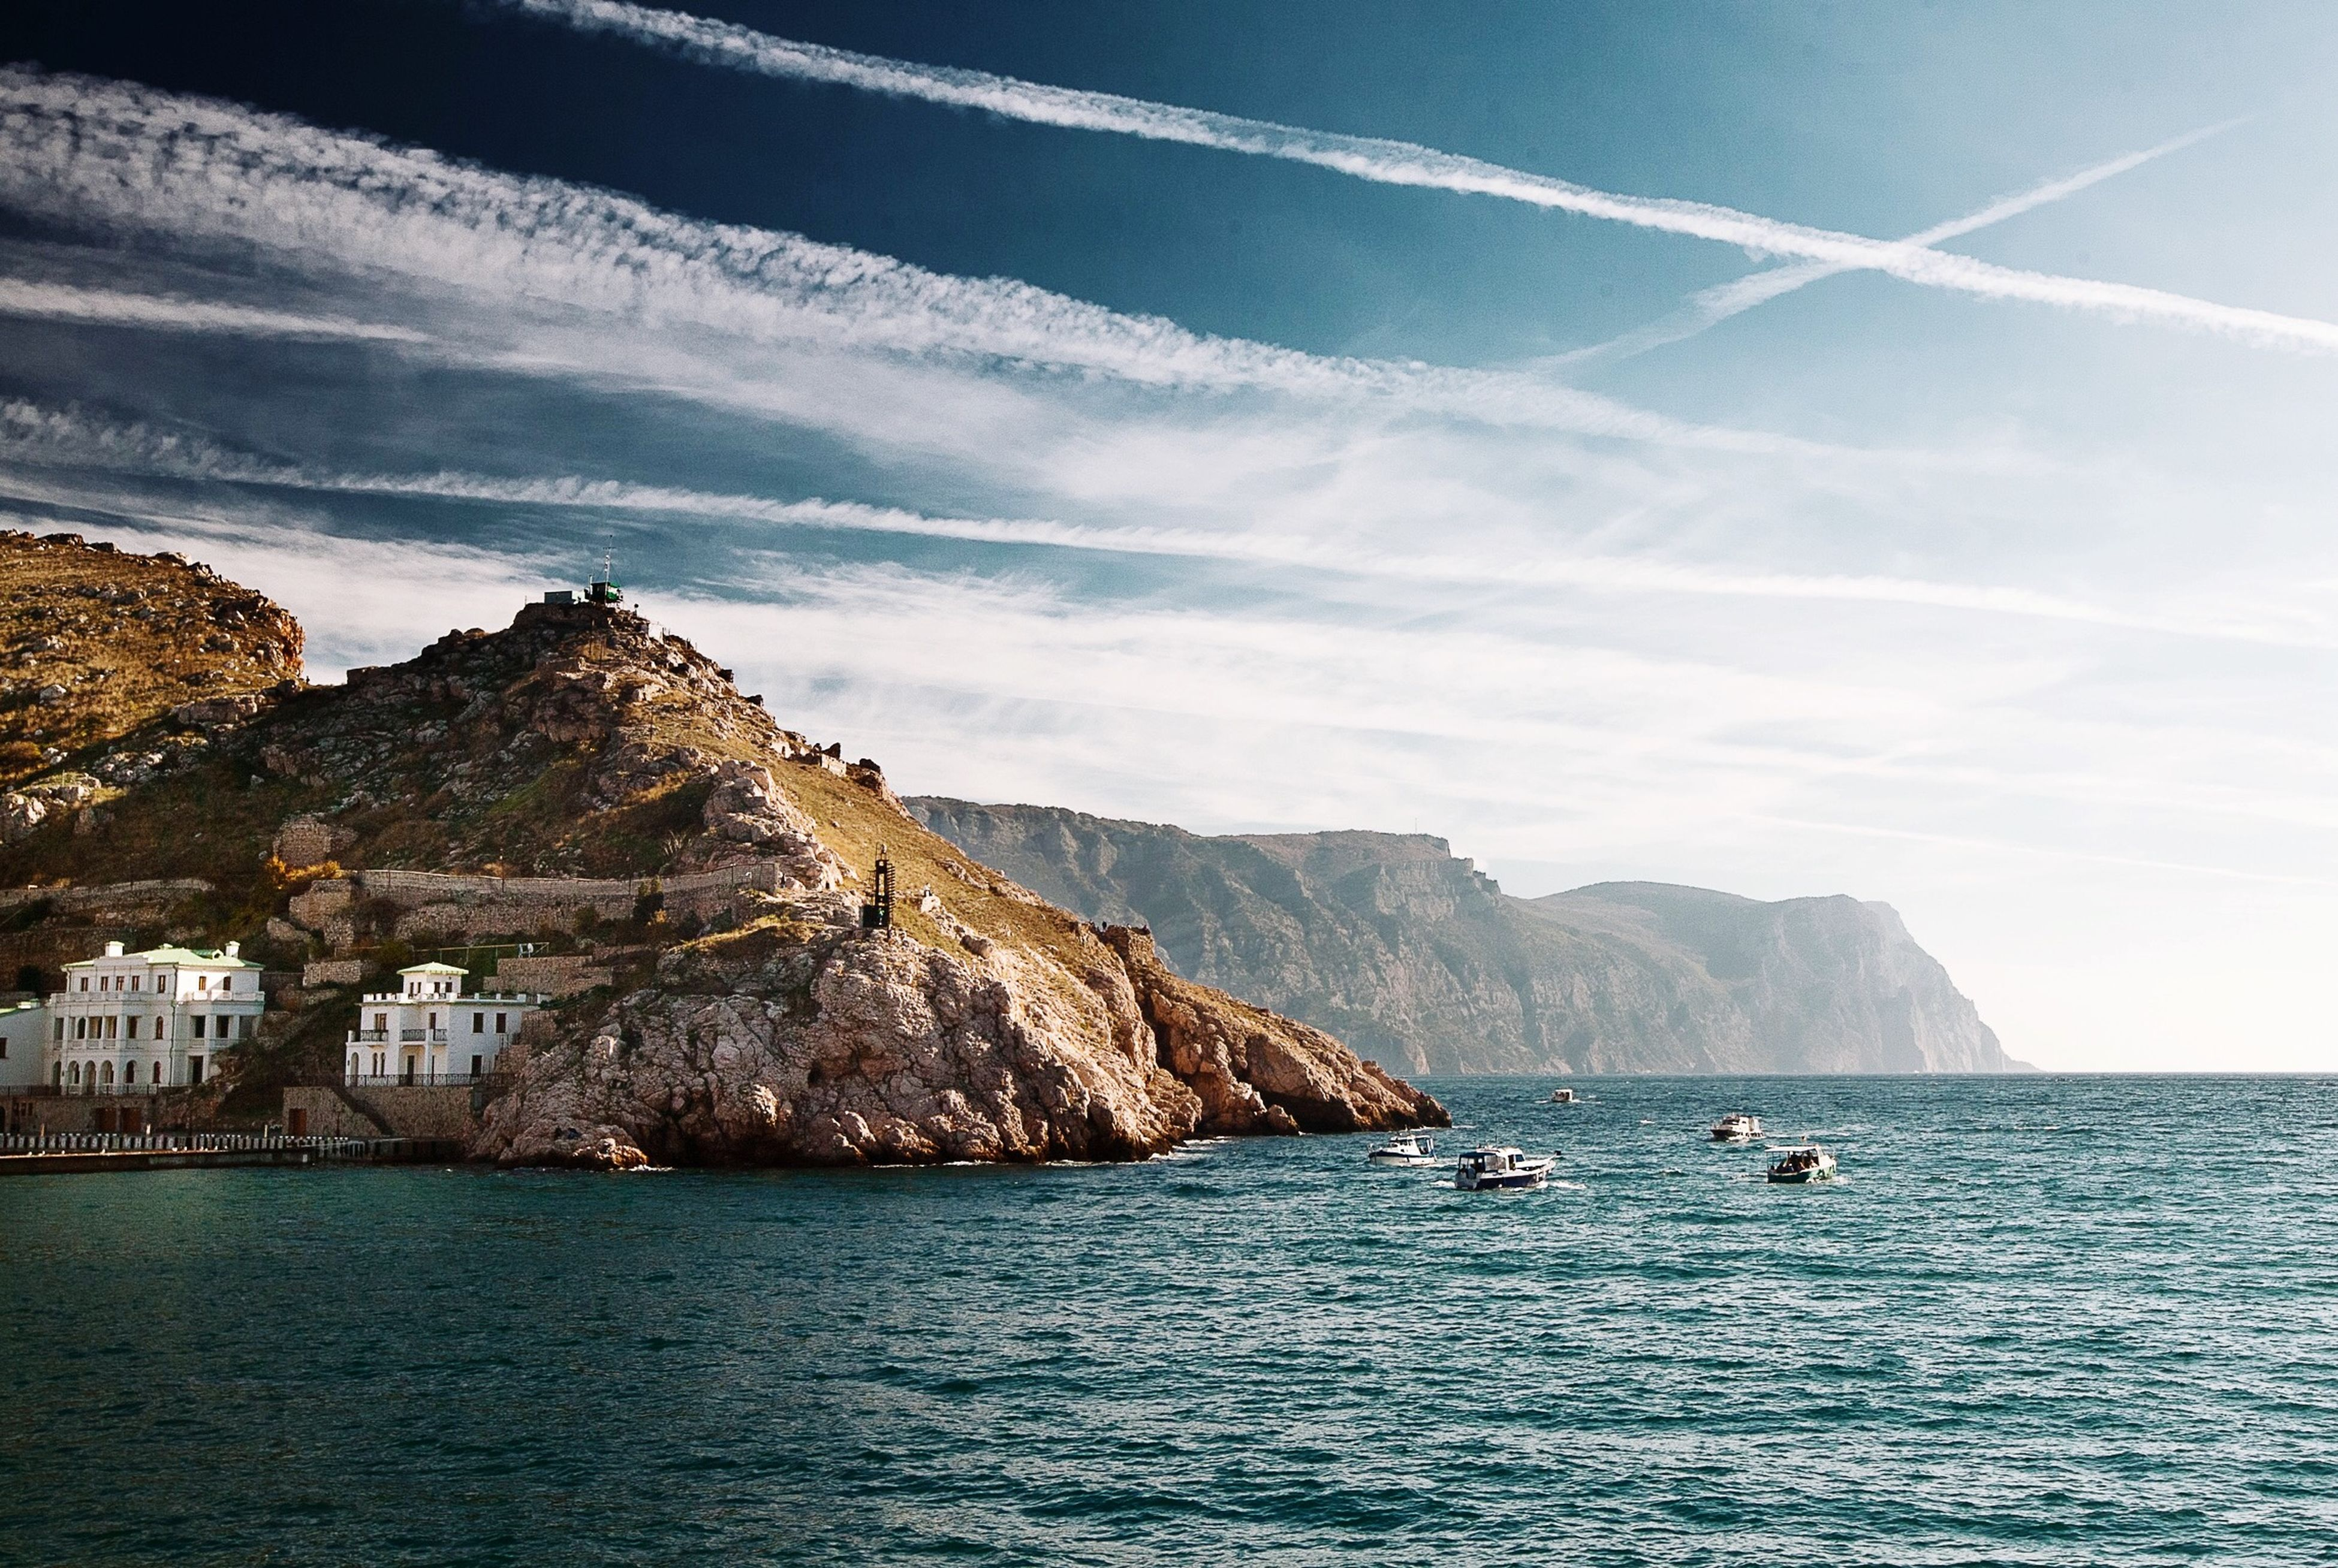 sea, water, mountain, waterfront, sky, nautical vessel, scenics, transportation, mountain range, tranquil scene, beauty in nature, tranquility, boat, mode of transport, nature, cloud - sky, cloud, rippled, blue, rock formation